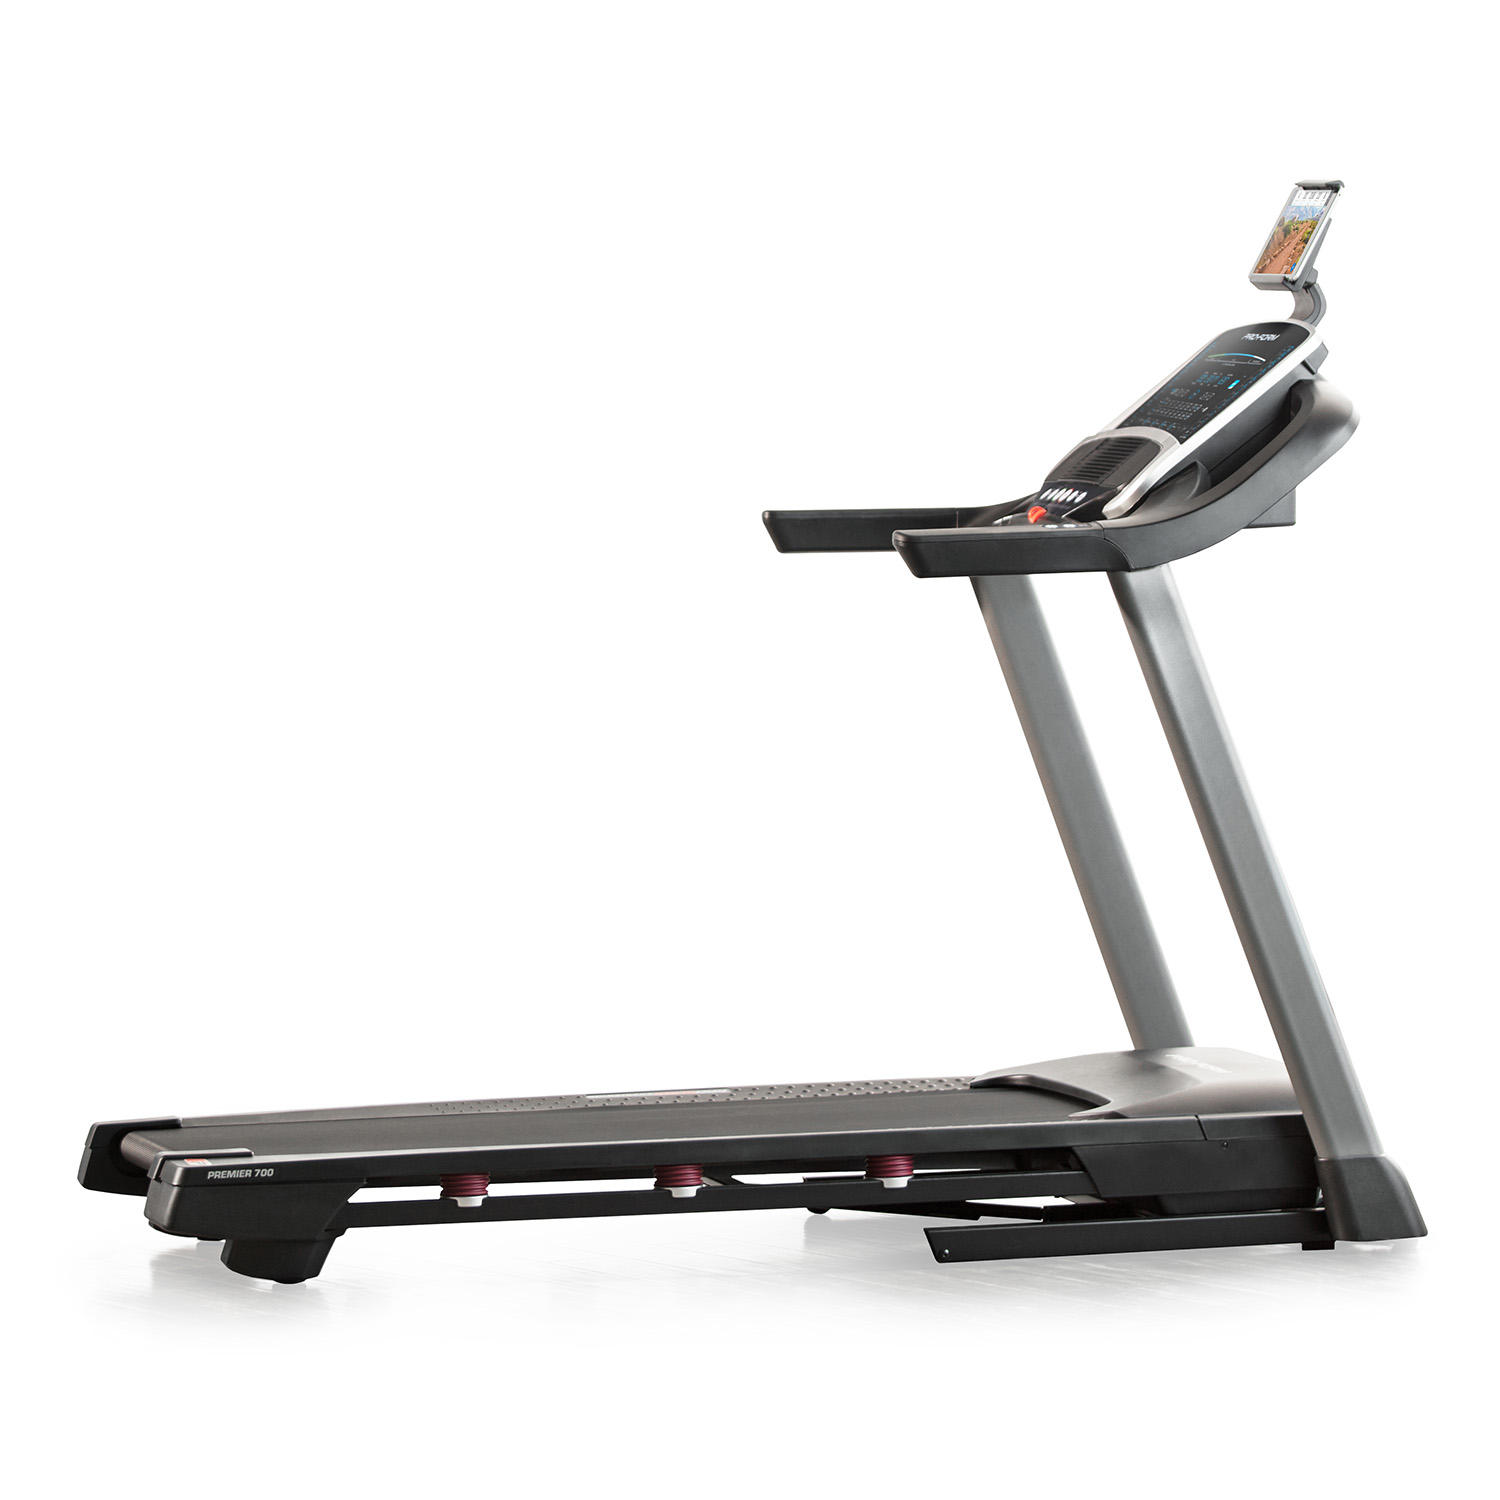 Proform Premier 700 Treadmill